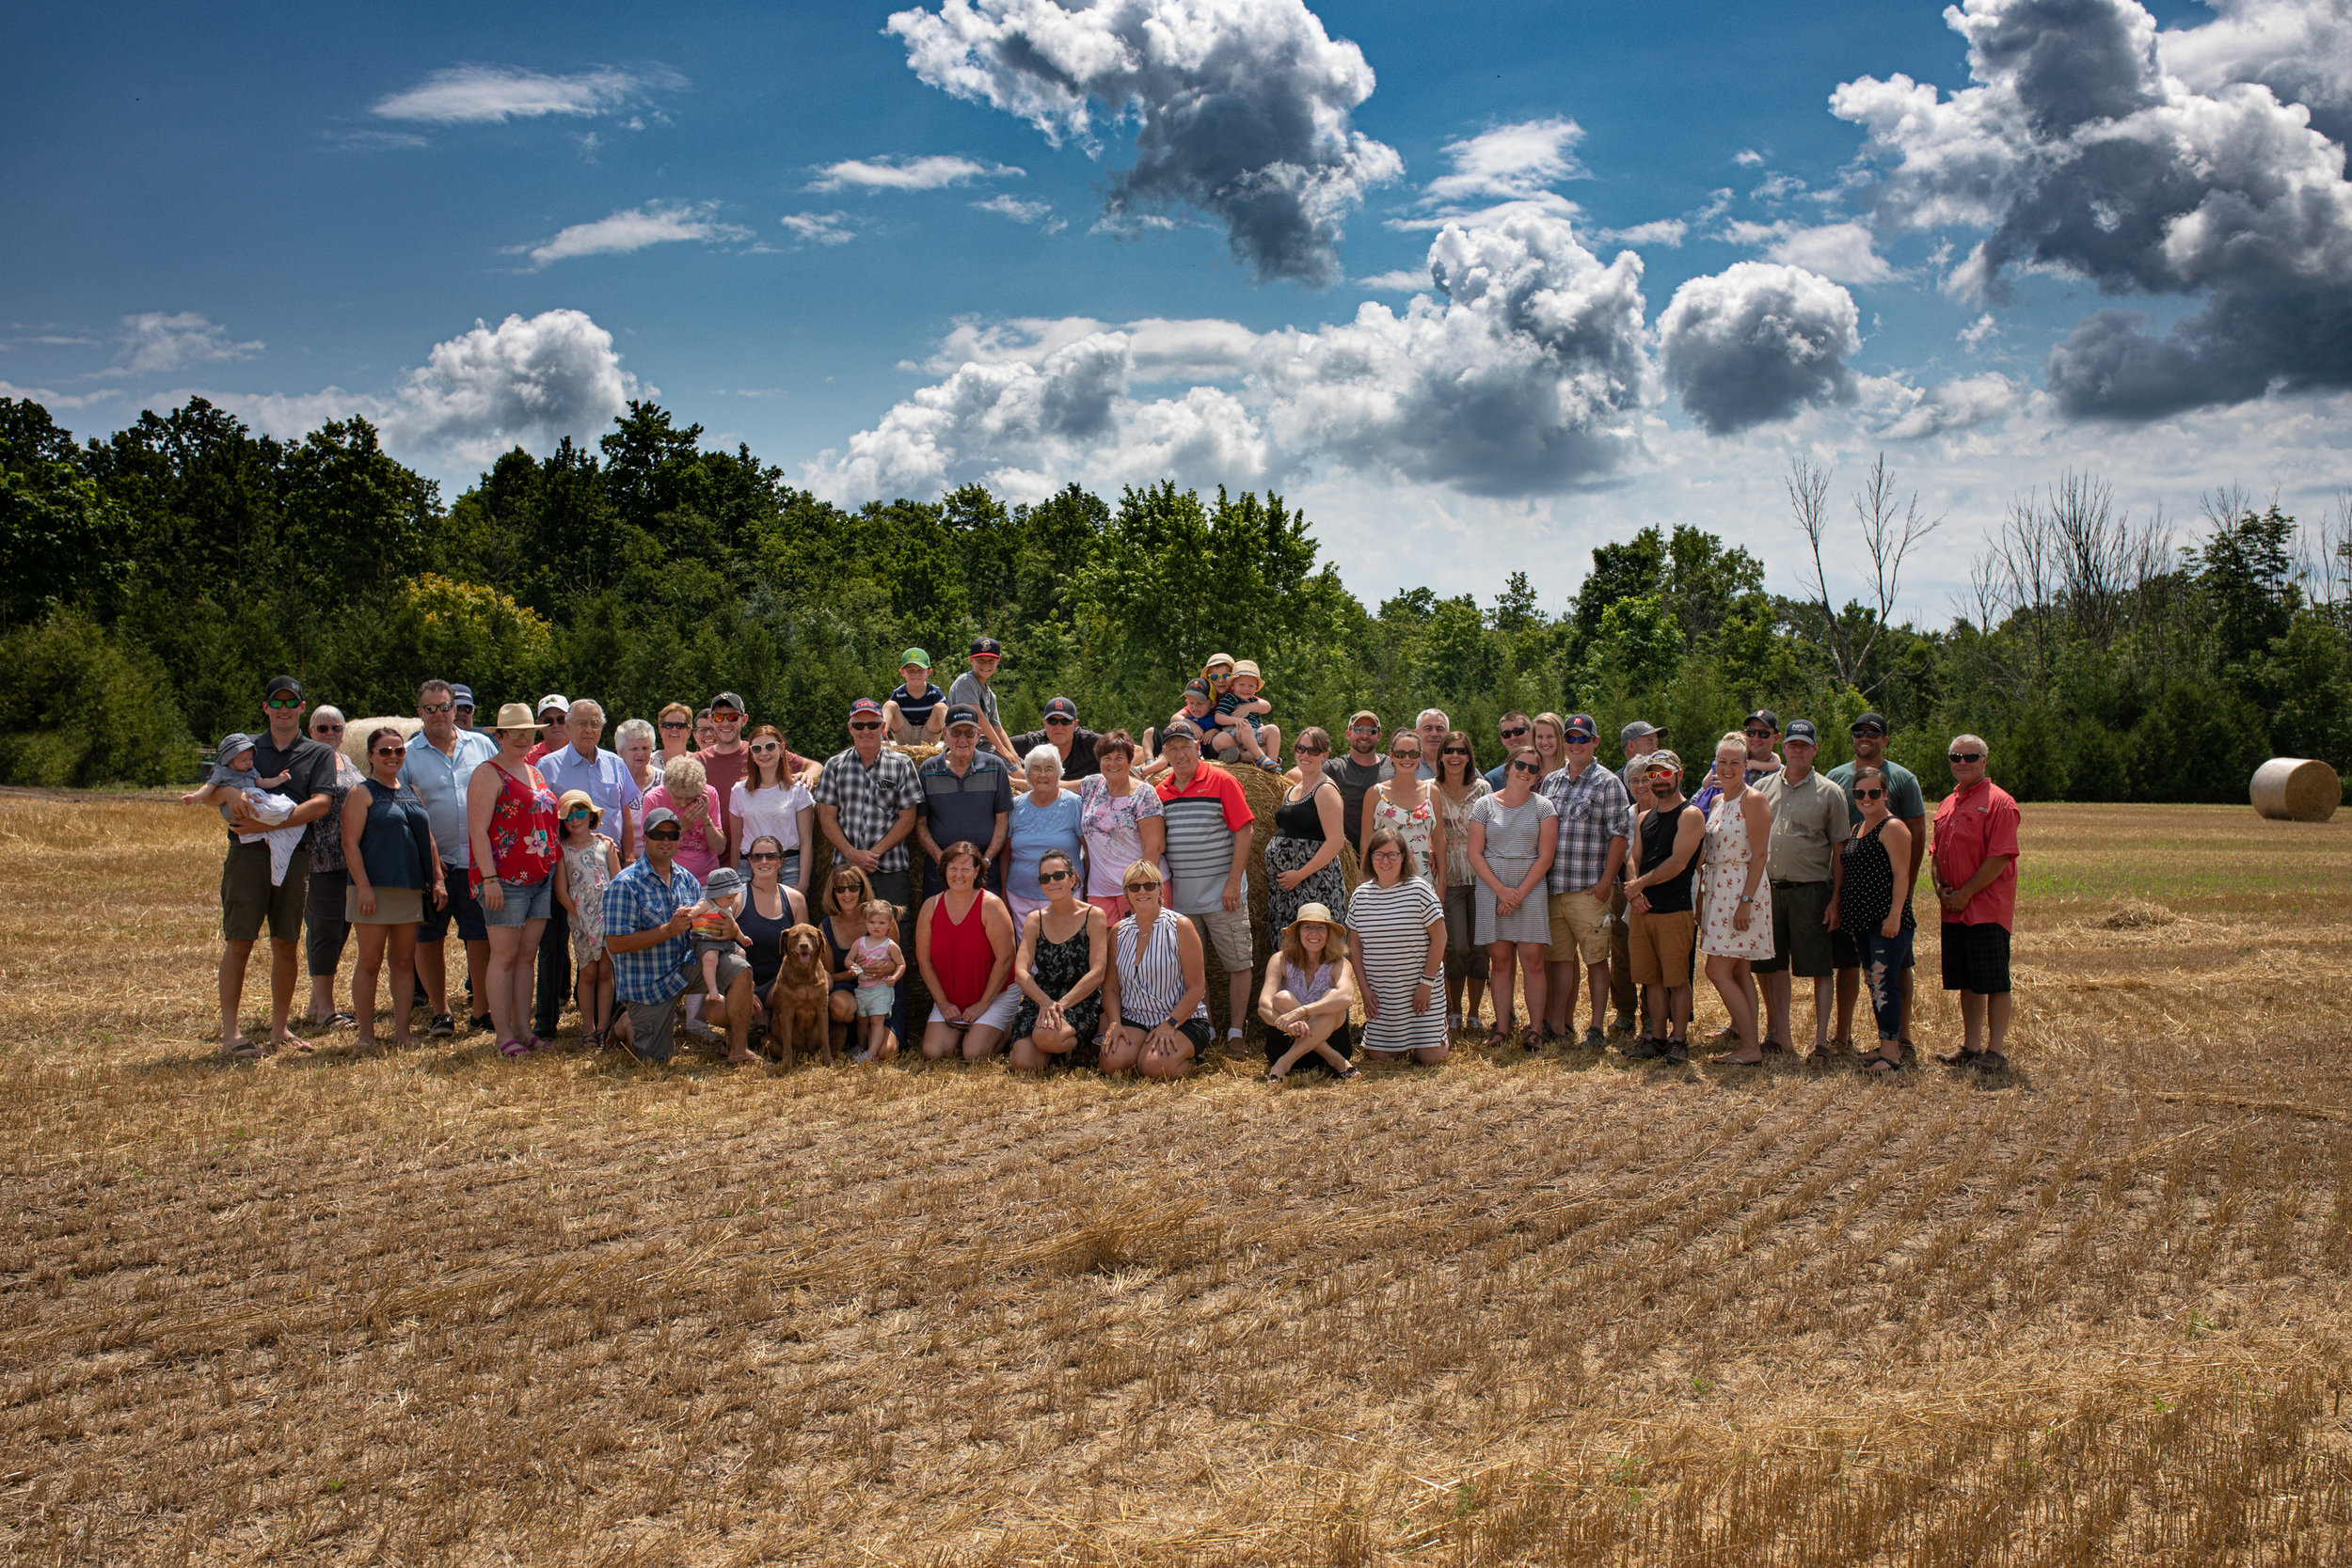 Family-agricultural-photographer-jodie-aldred-photography-rural-country-farm-farmers-ontario-london-huron-middlesex-elgin-chatham-elgin-rural-country-outdoors-wheat-summer-bales.jpg